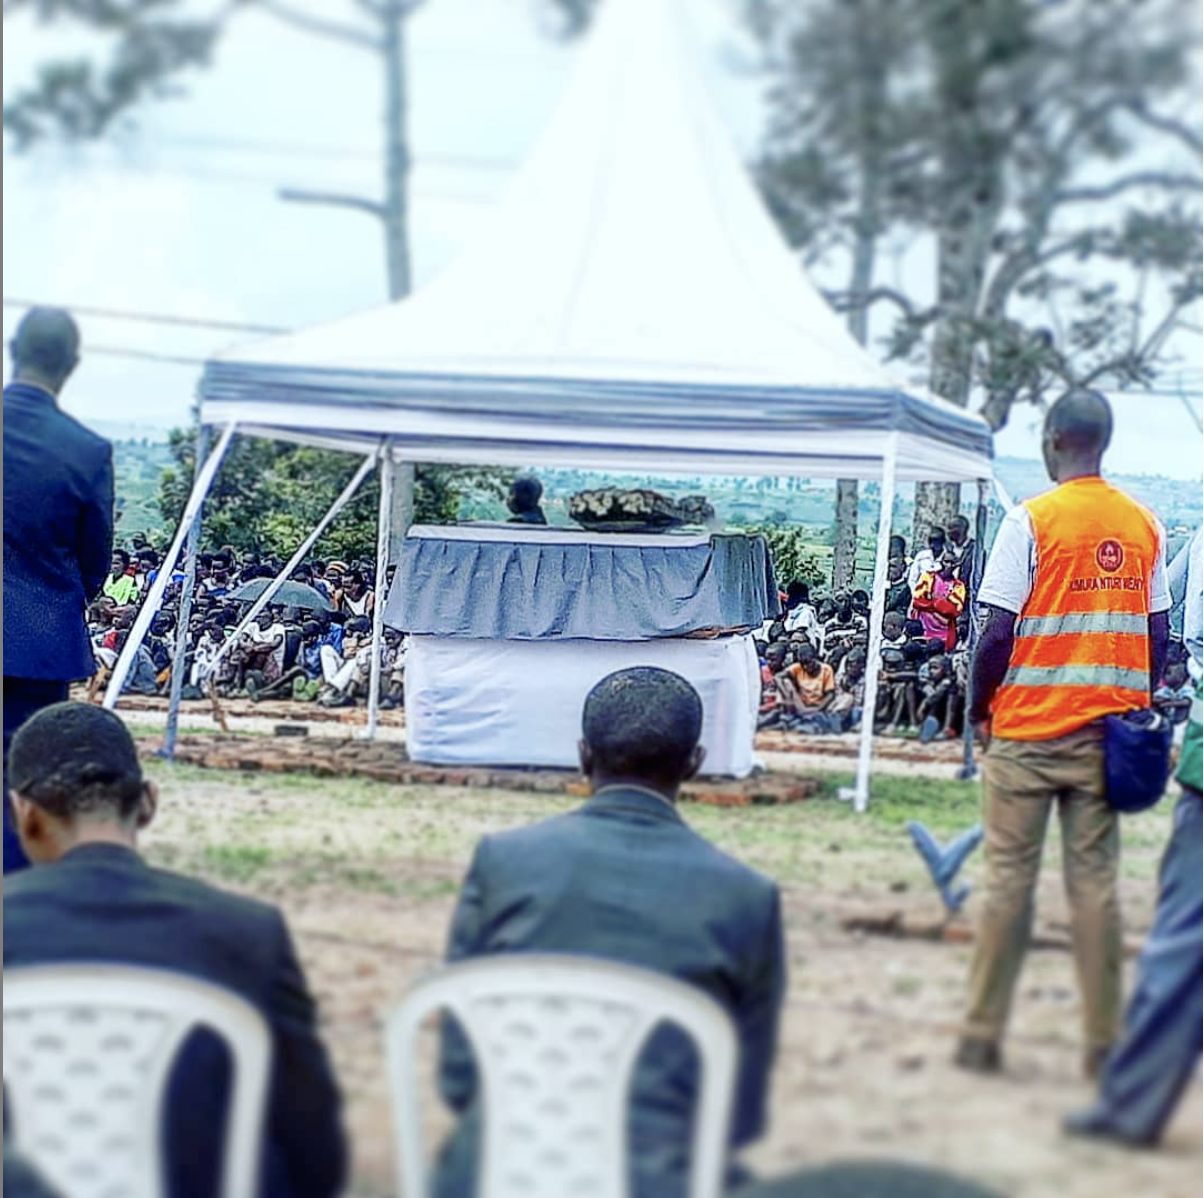 124 bodies of victims of the 1994 Genocide against the Tutsi waiting to be buried in the Kinazi Genocide Memorial, which has more than 60,000 victims already buried there. #RwandaRemembers #Kwibuka24